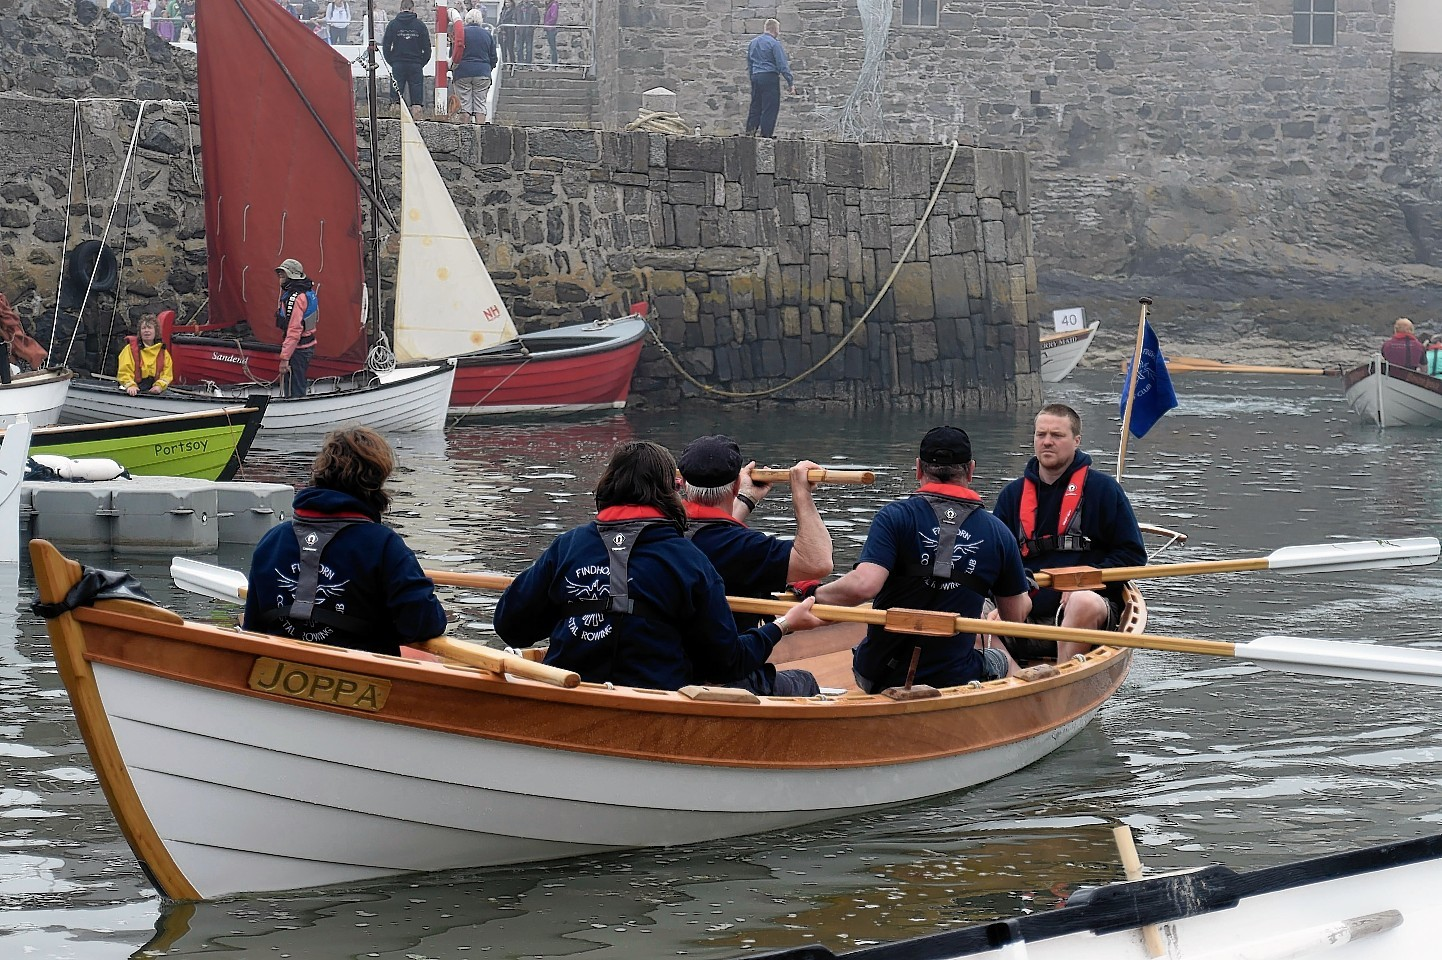 Locals feared the house would damage Portsoy Boat Festival.